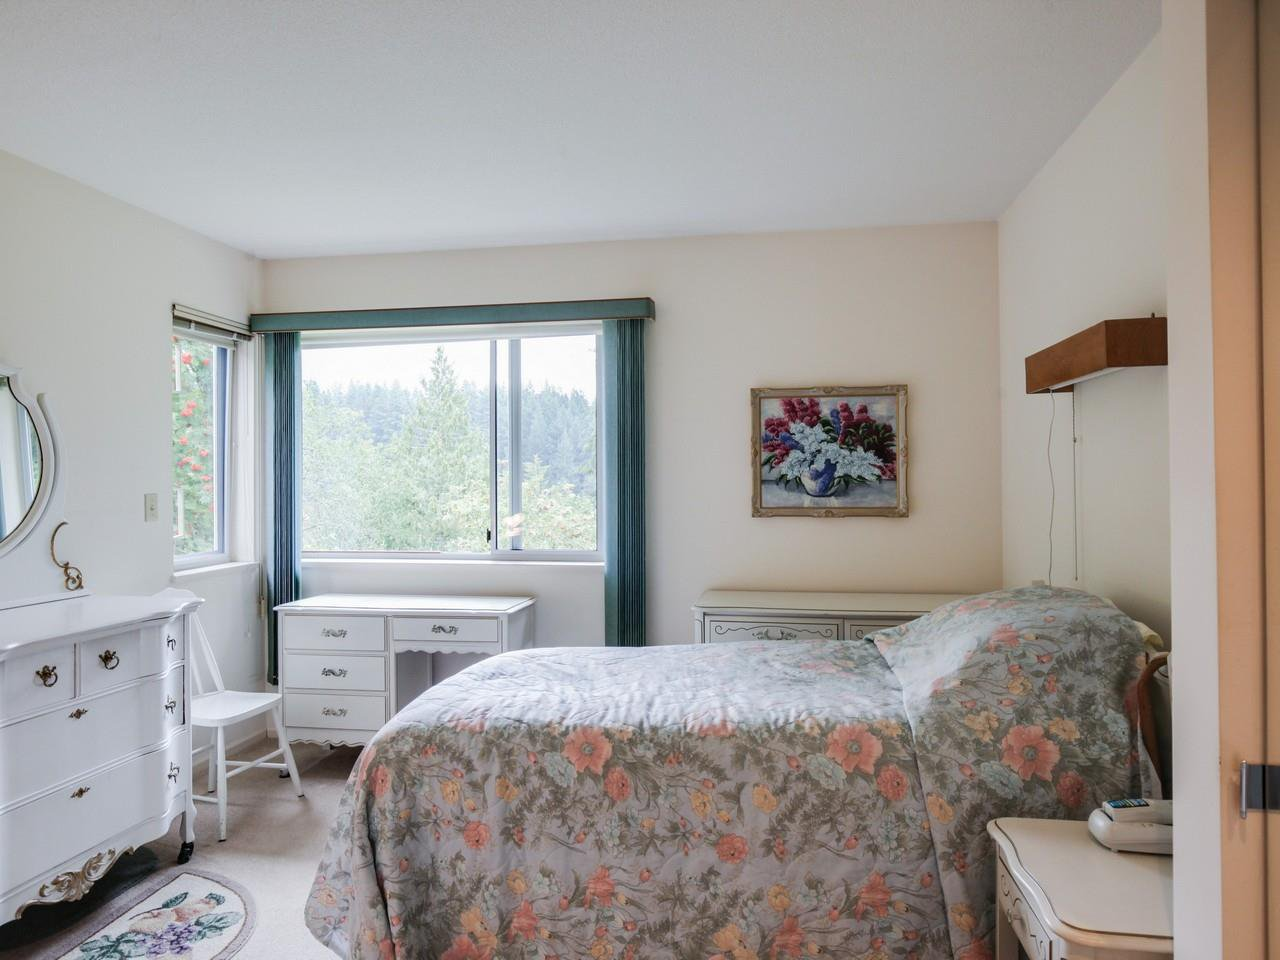 Photo 11: Photos: 4120 LYNN VALLEY ROAD in North Vancouver: Lynn Valley House for sale : MLS®# R2100168